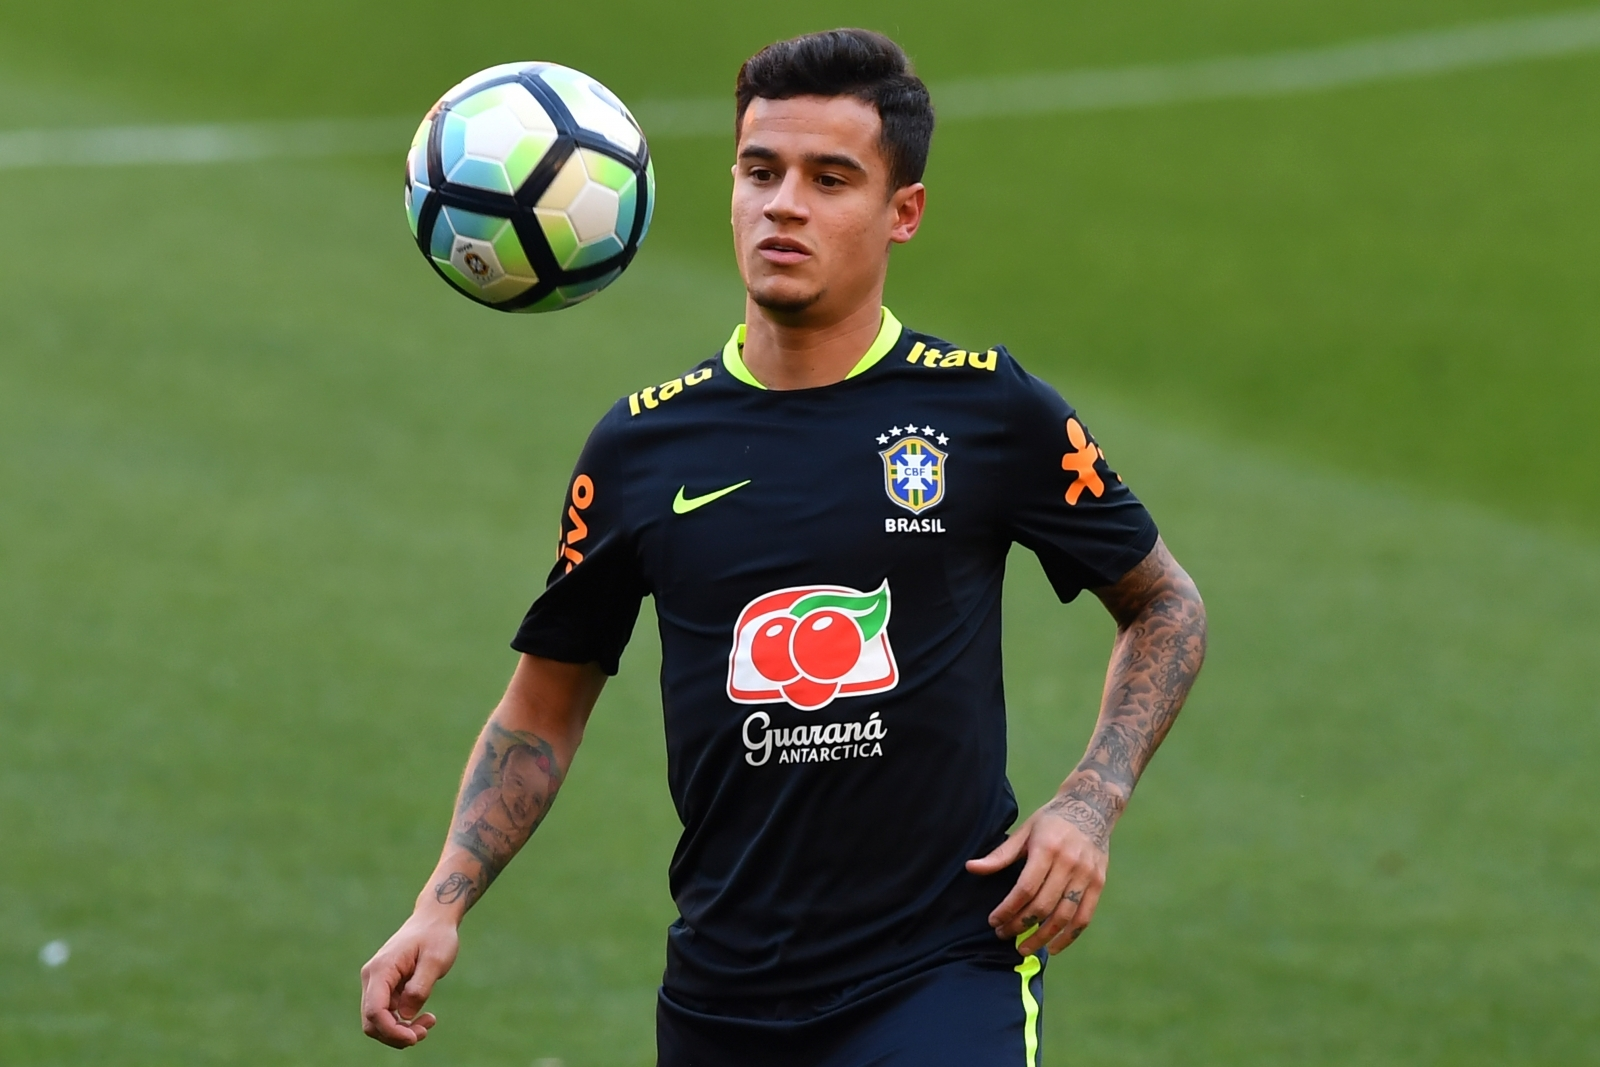 Coutinho to start on bench for Brazil against Ecuador